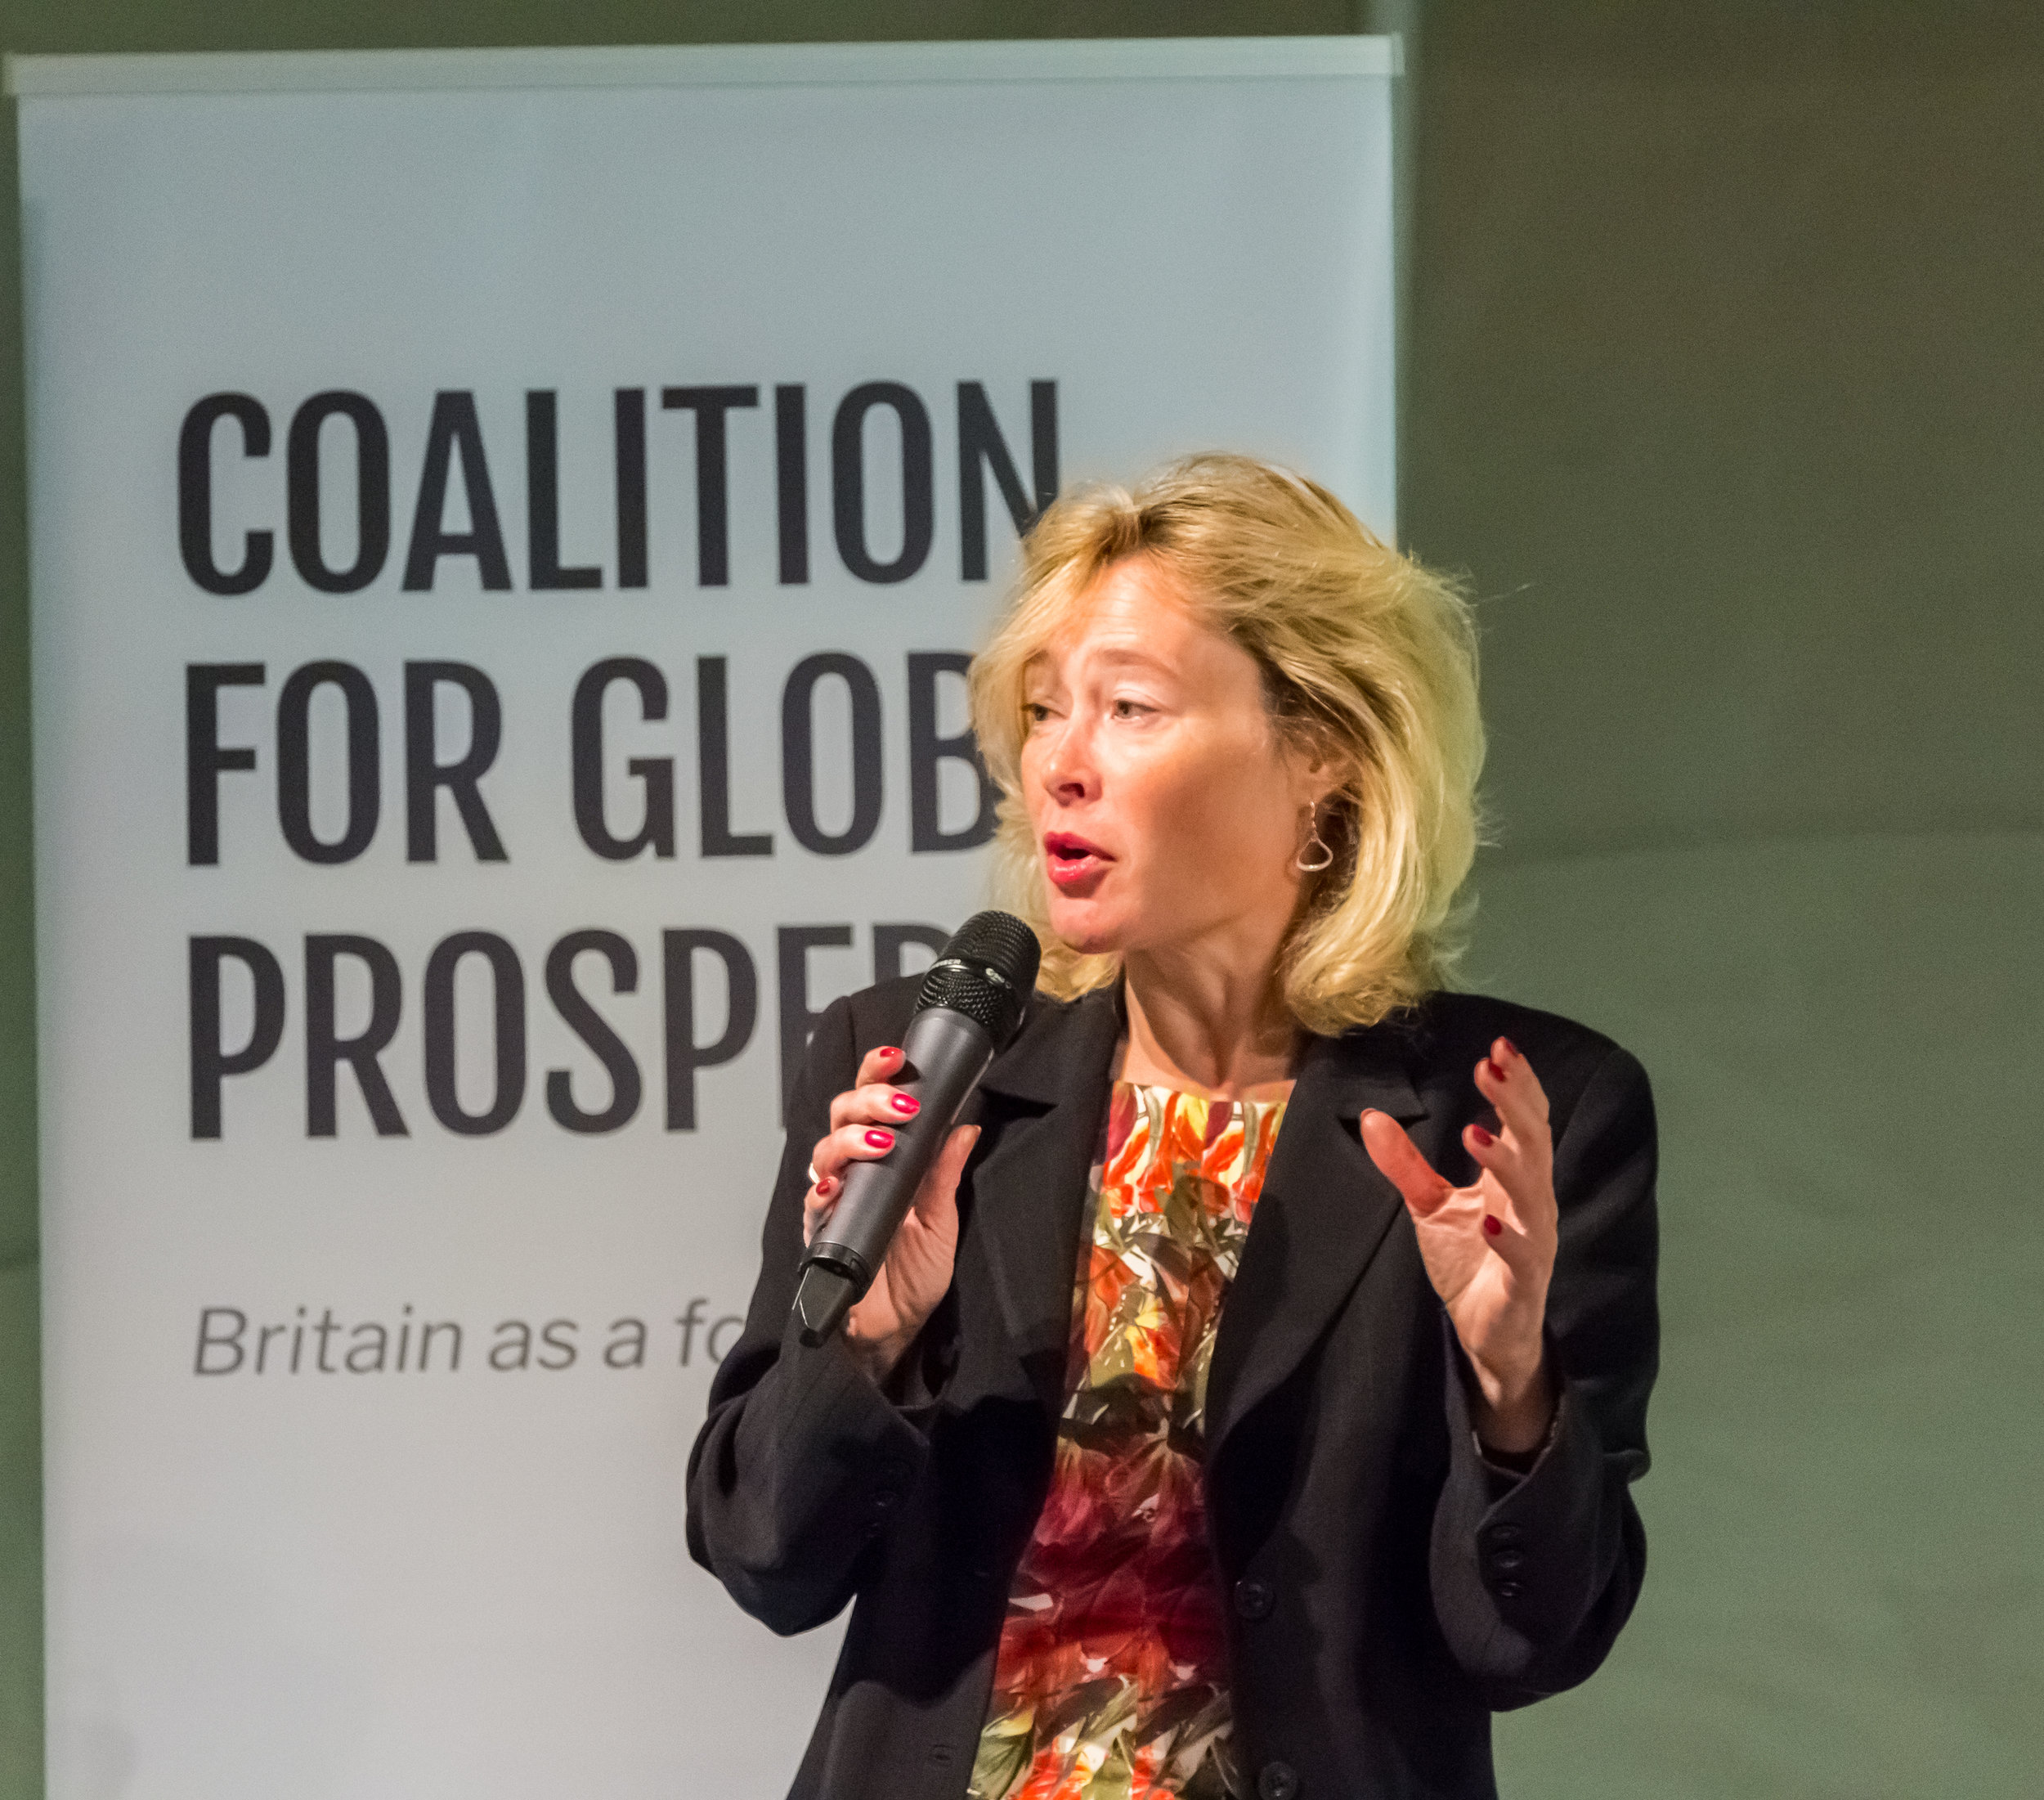 Baroness Julie Smith